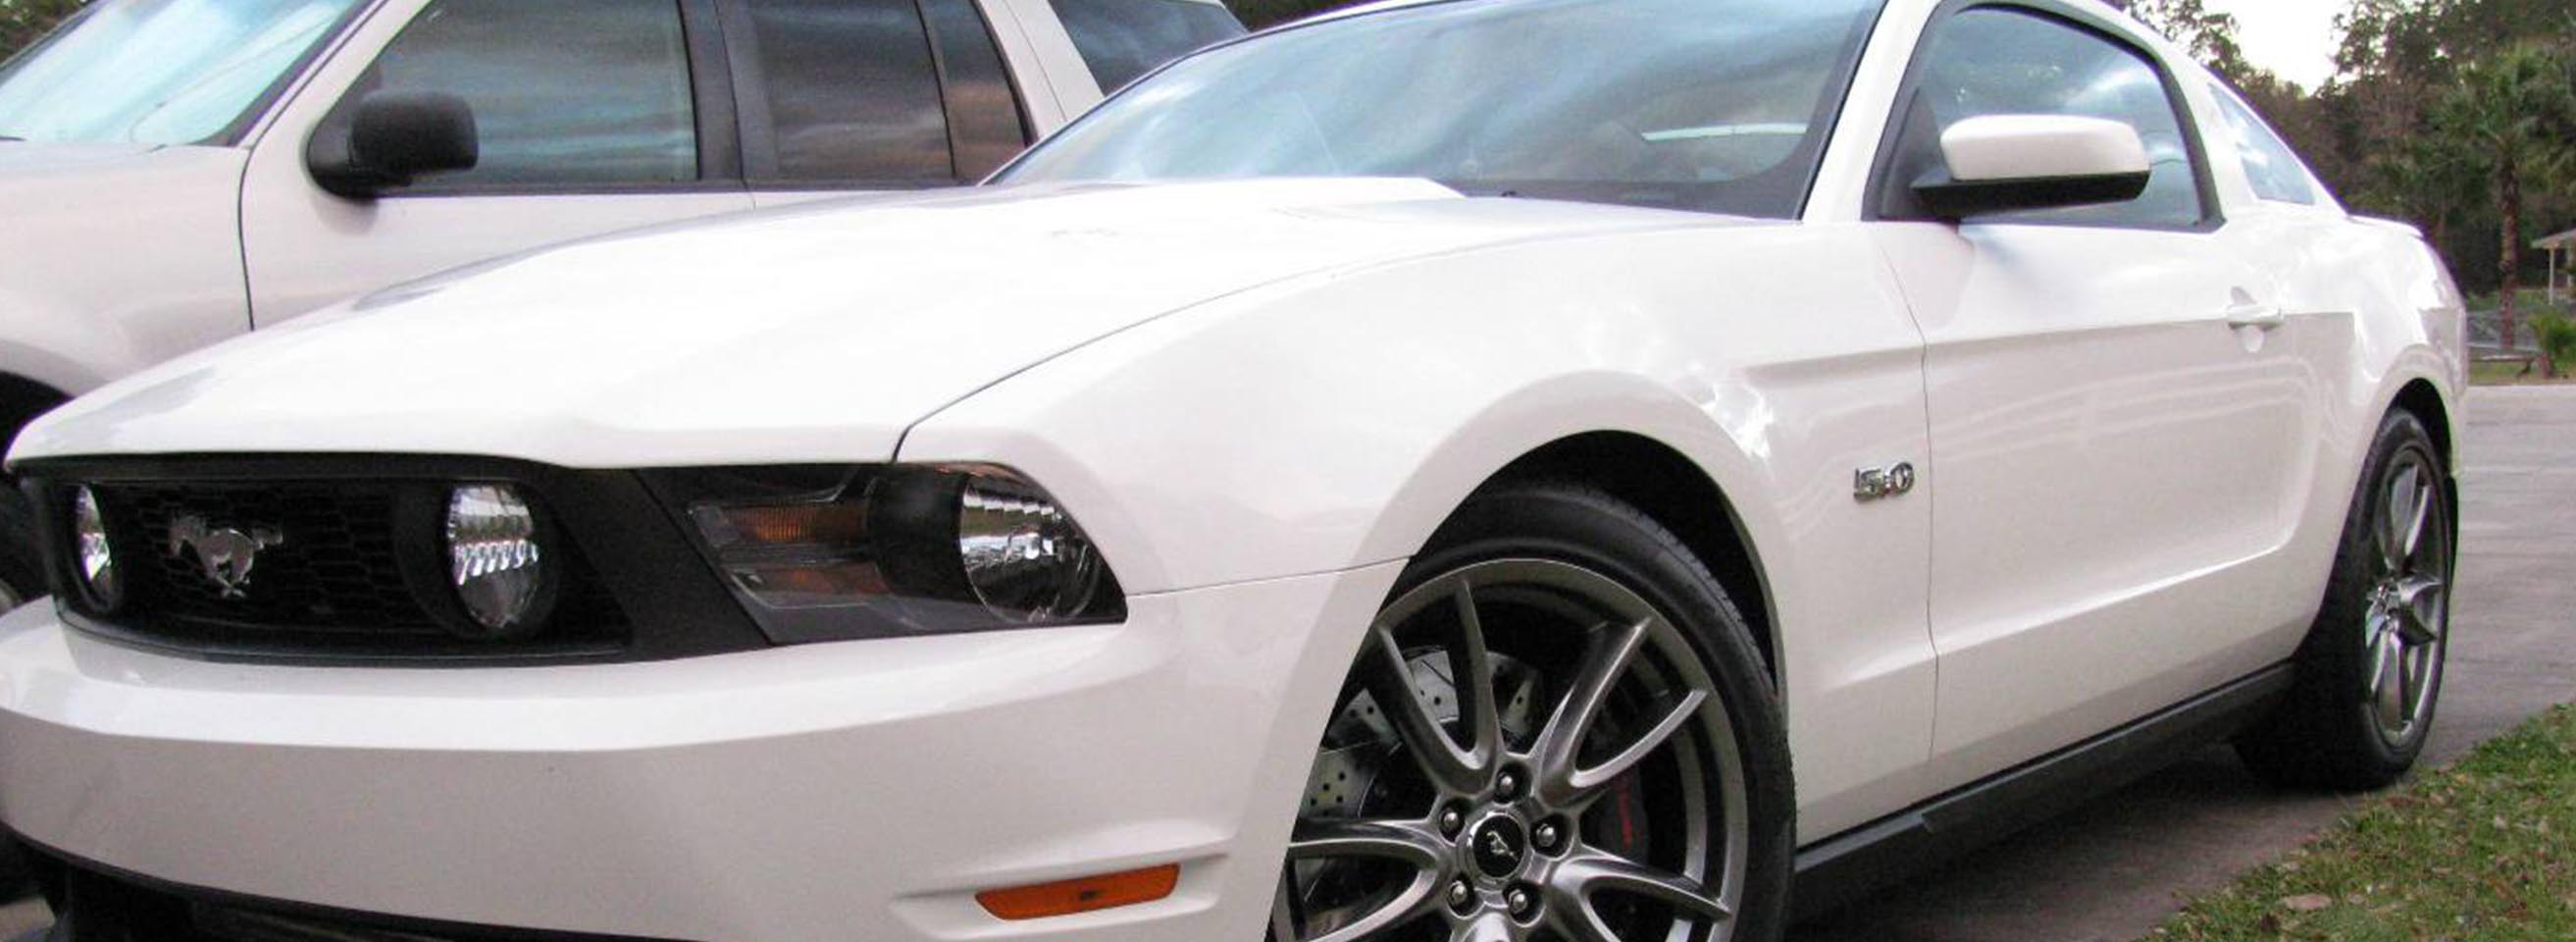 What Are The Best Brake Pads For A Ford Mustang?